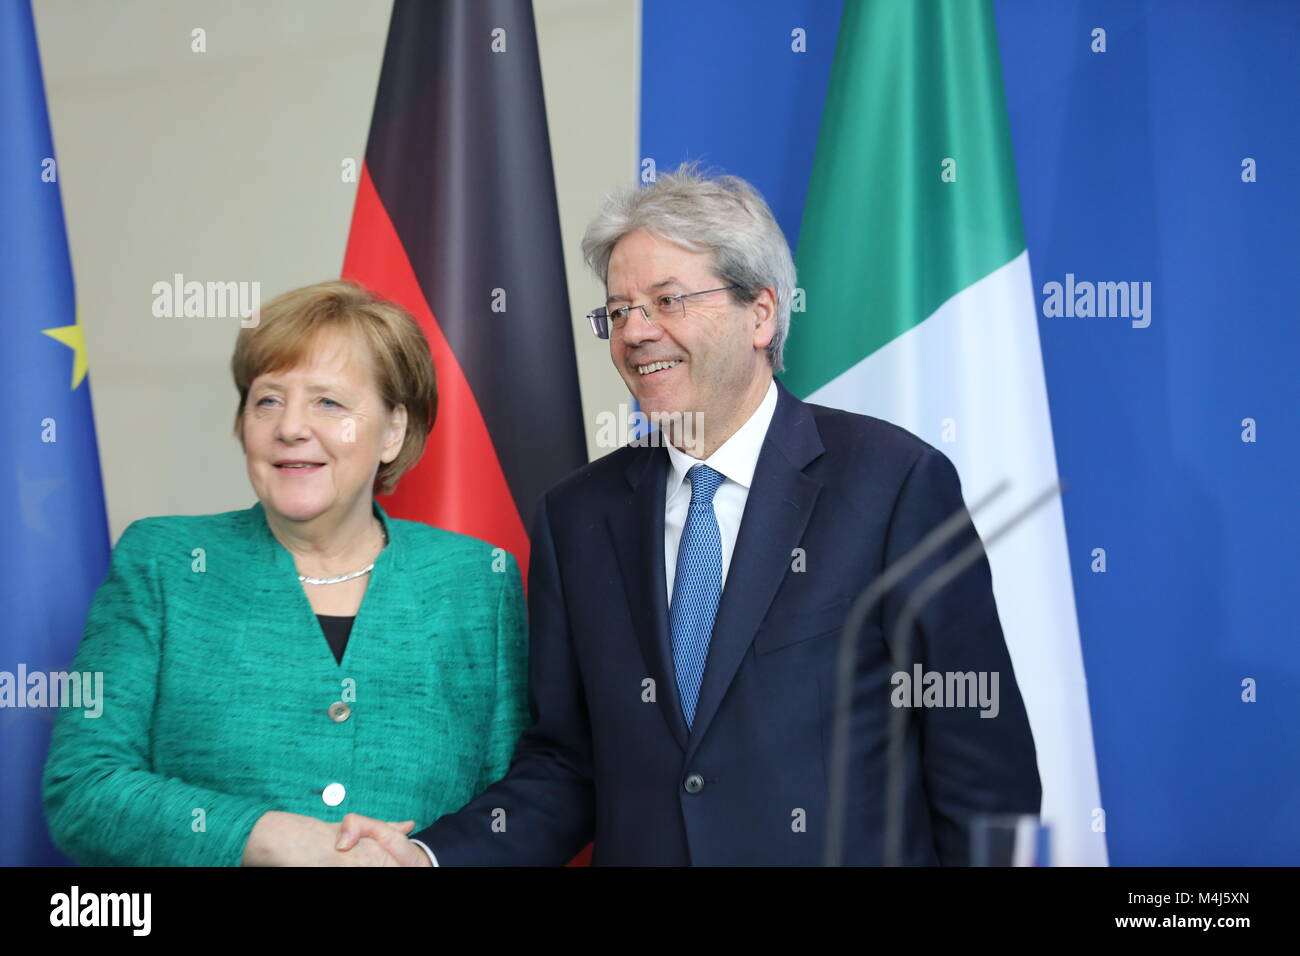 Berlin, Germany. 16th Feb, 2018. Berlin: Chancellor Angela Merkel and Italian Prime Minister Paolo Gentiloni at Stock Photo